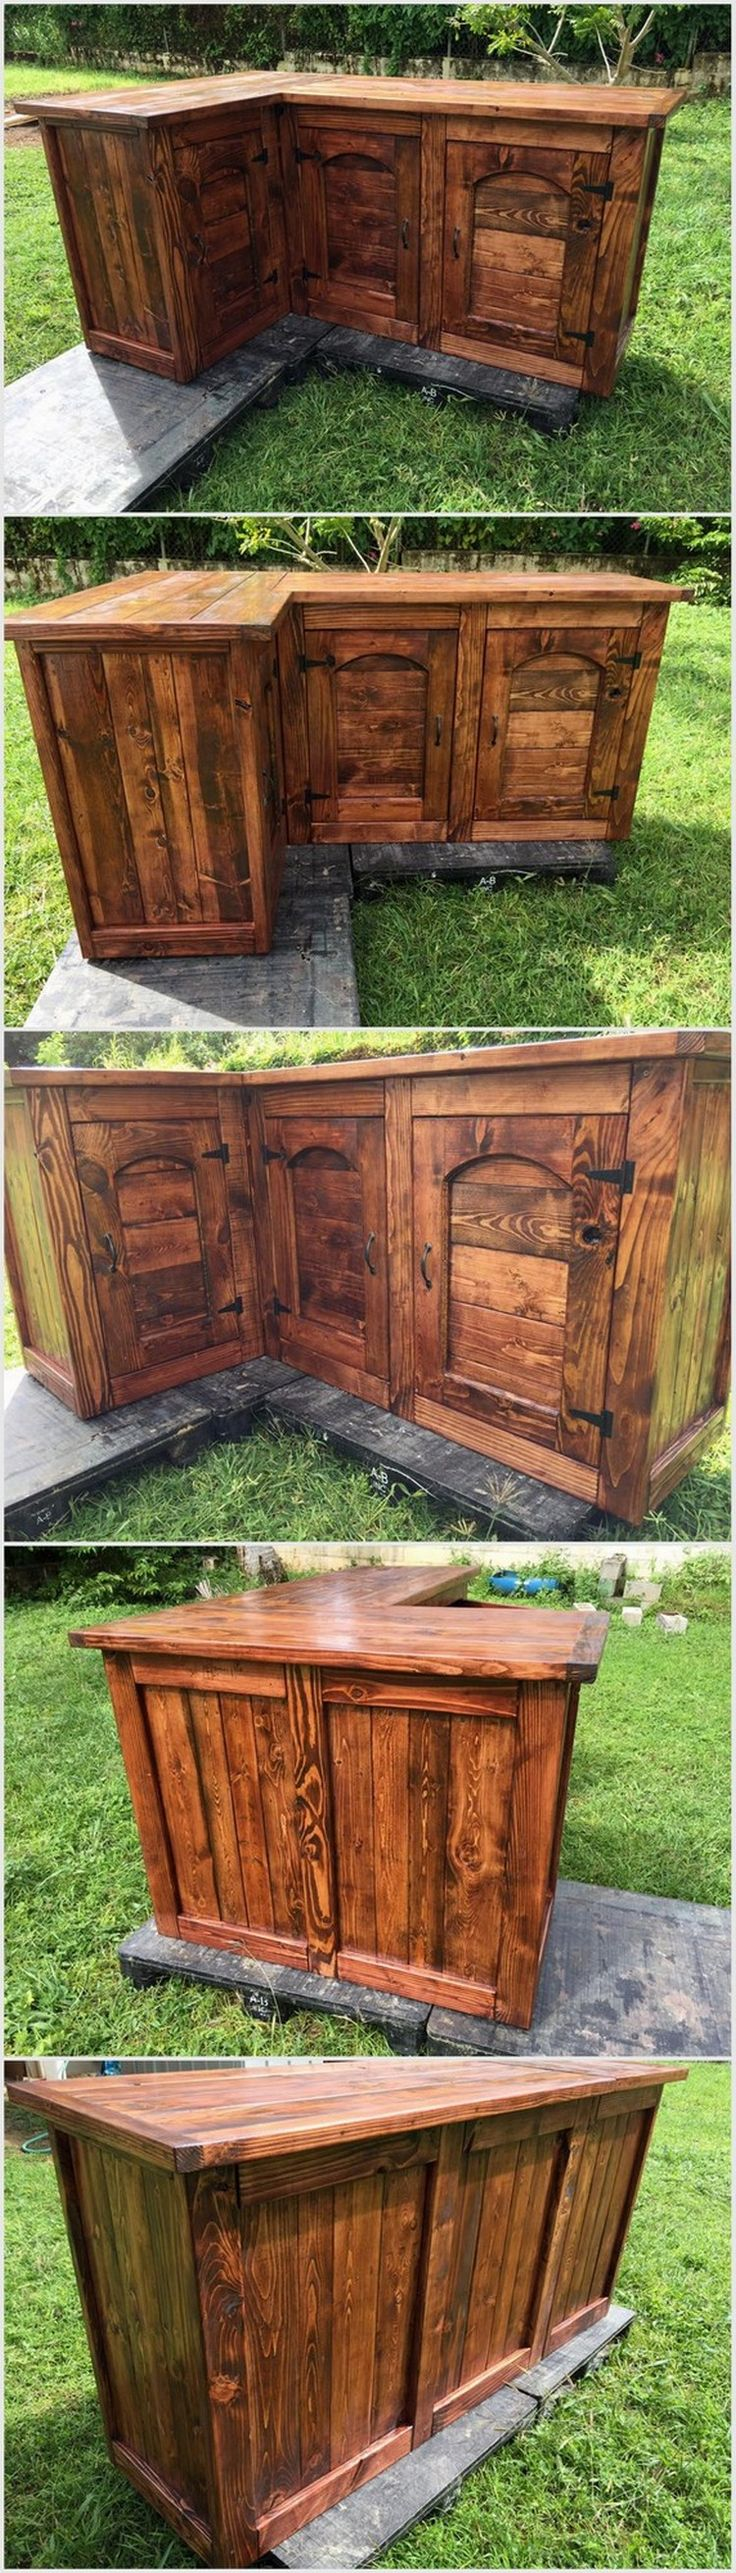 Wooden pallet craft projects - Stunning Achievements With Recycled Pallets Wood